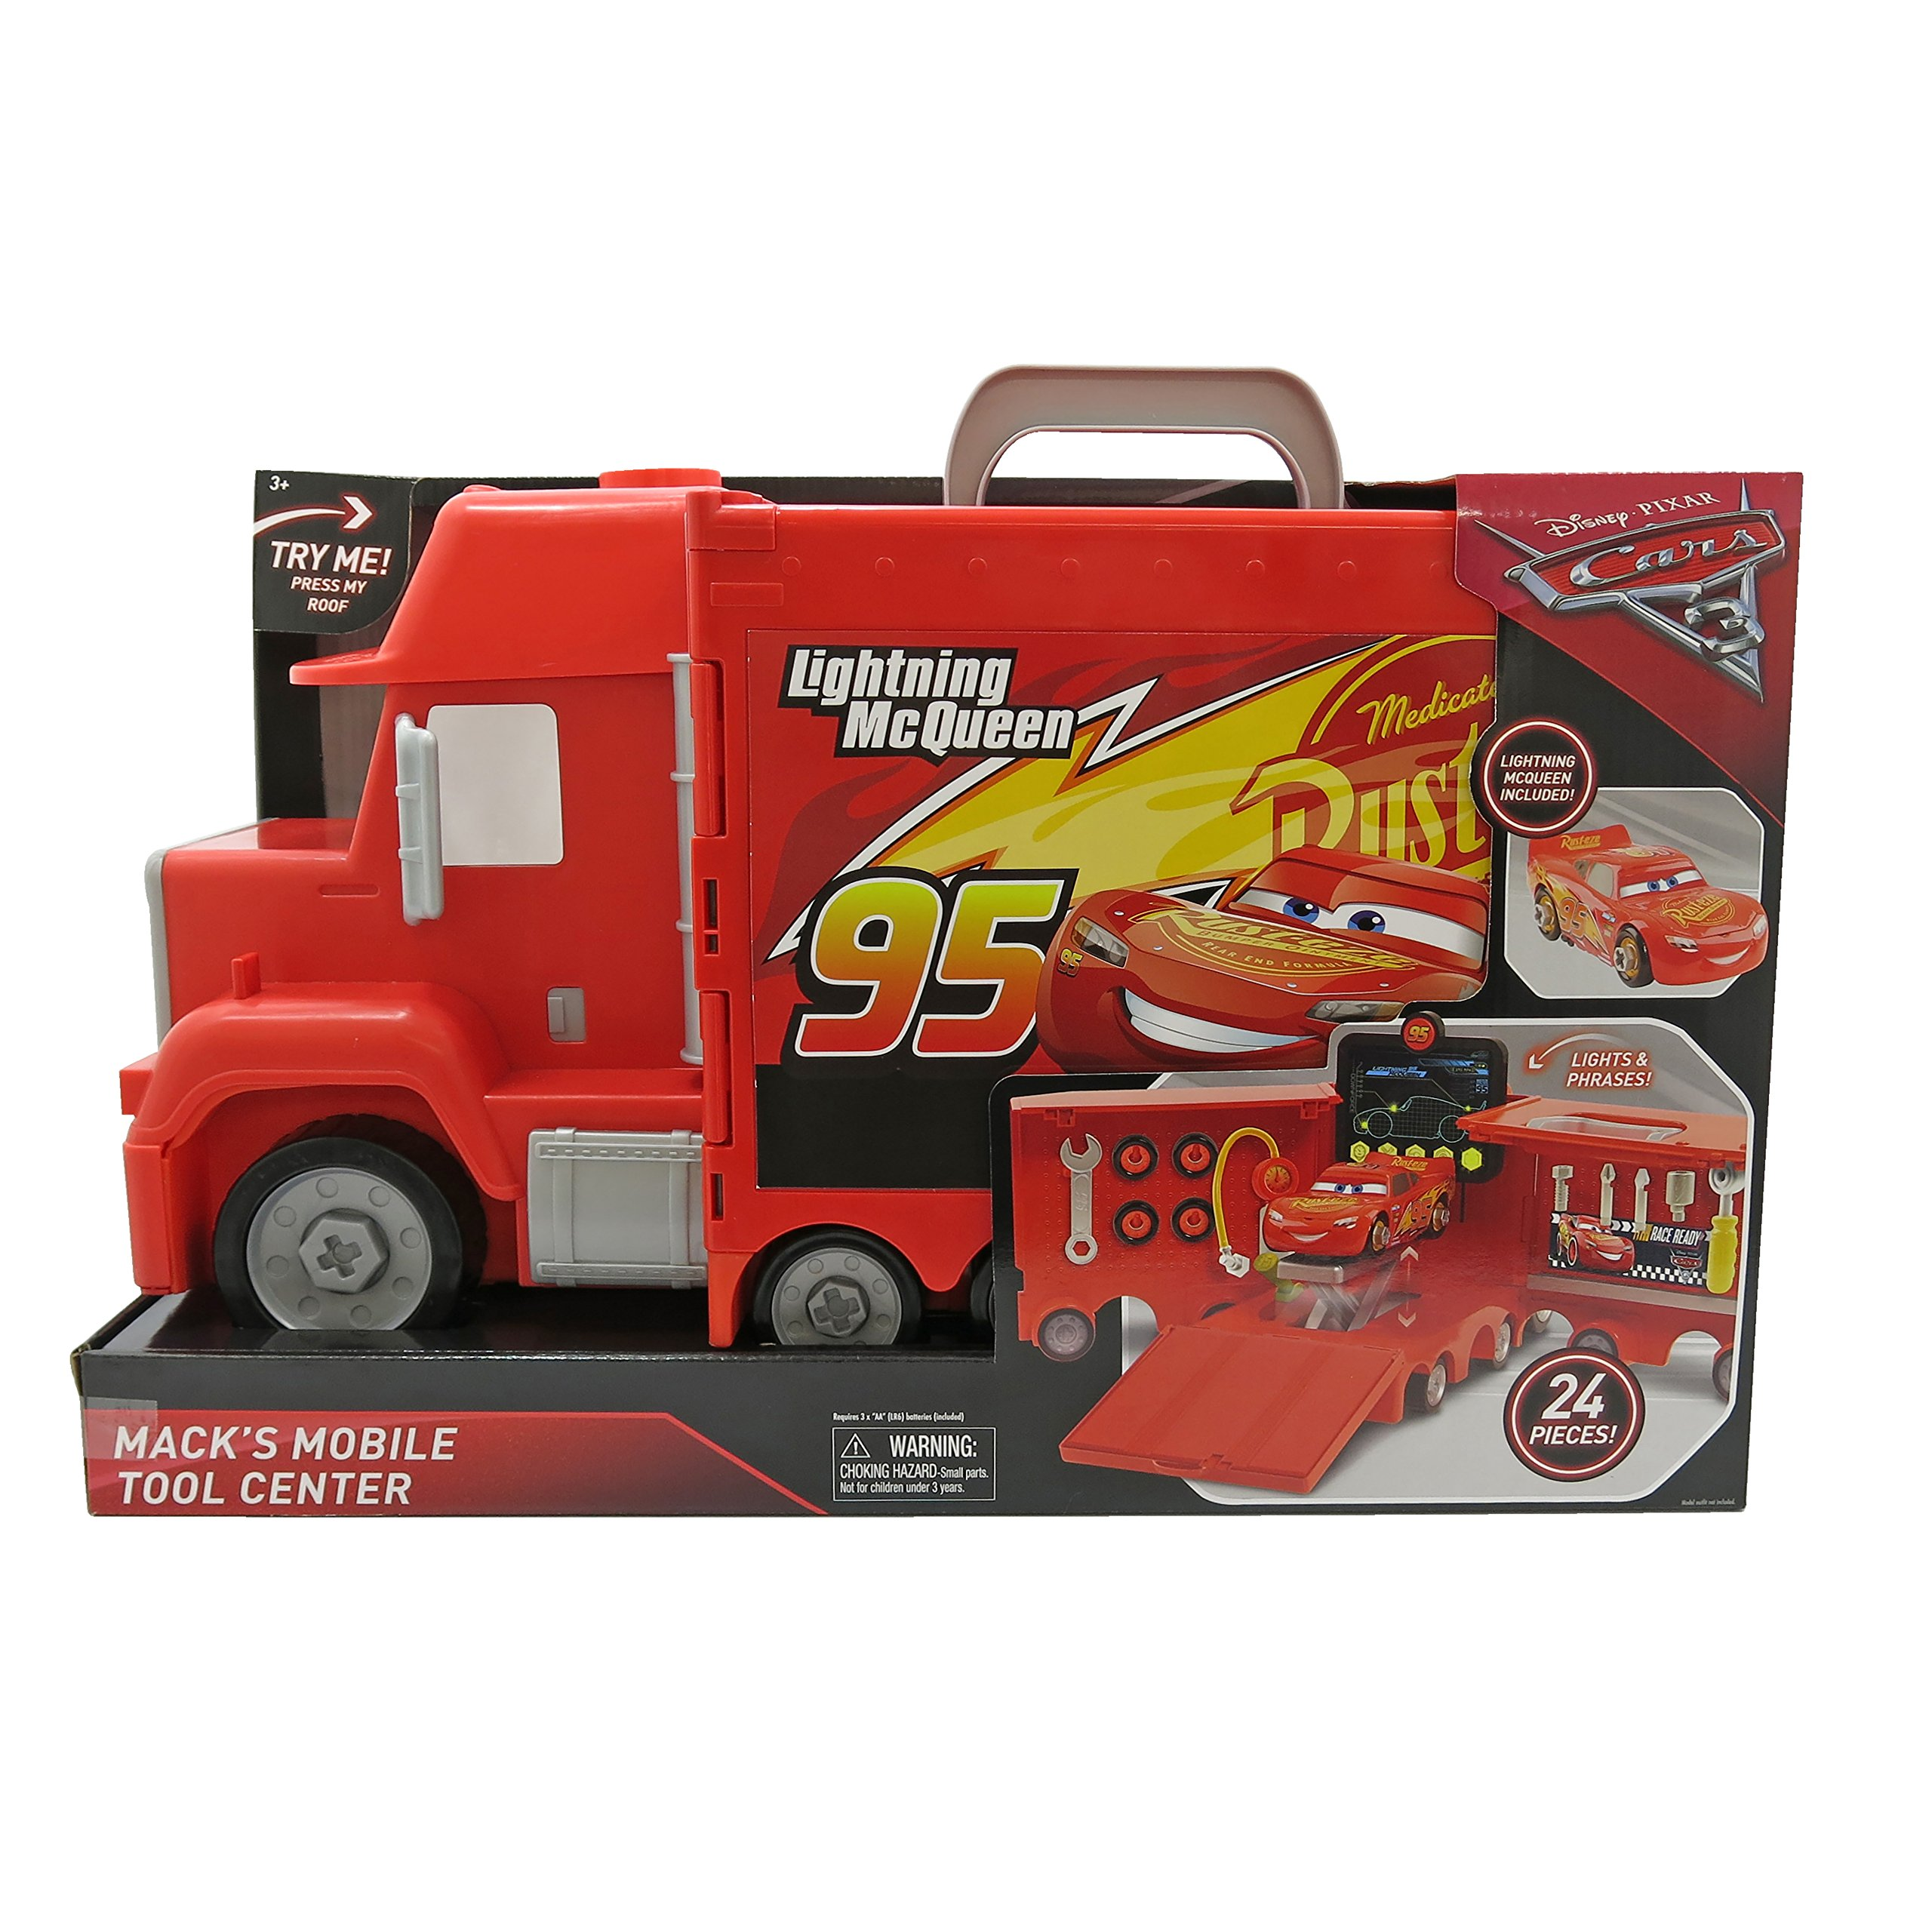 Cars 3 Macks Mobile Tool Center by Cars 3 (Image #1)